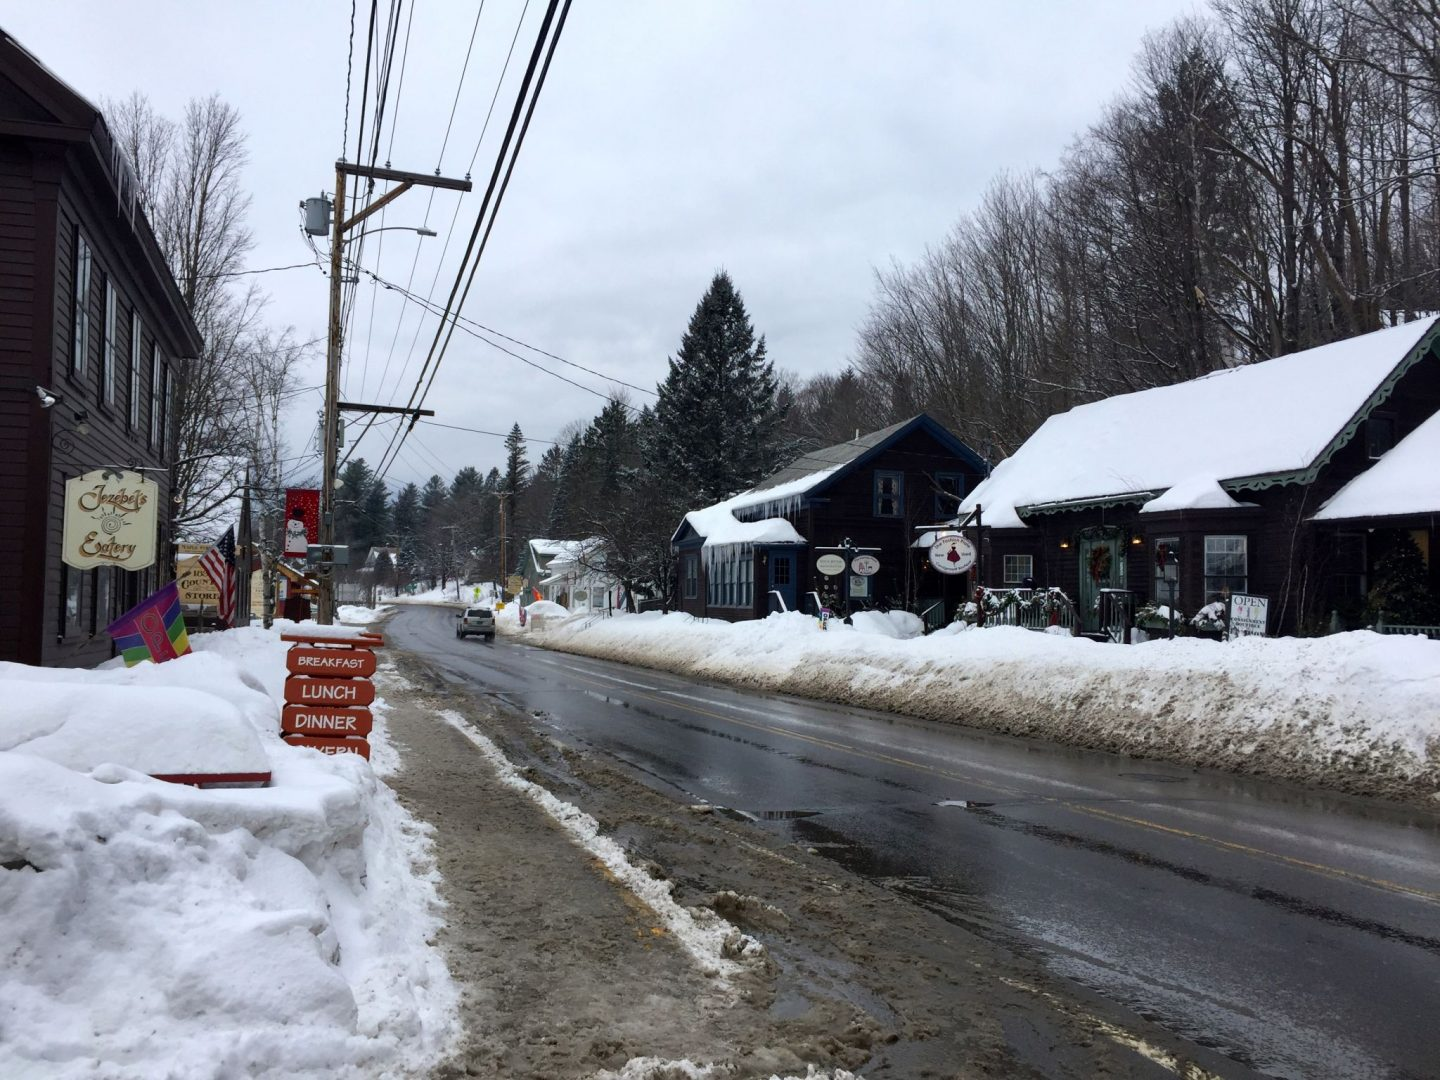 The snow covered town of Wimington Vermont in winter